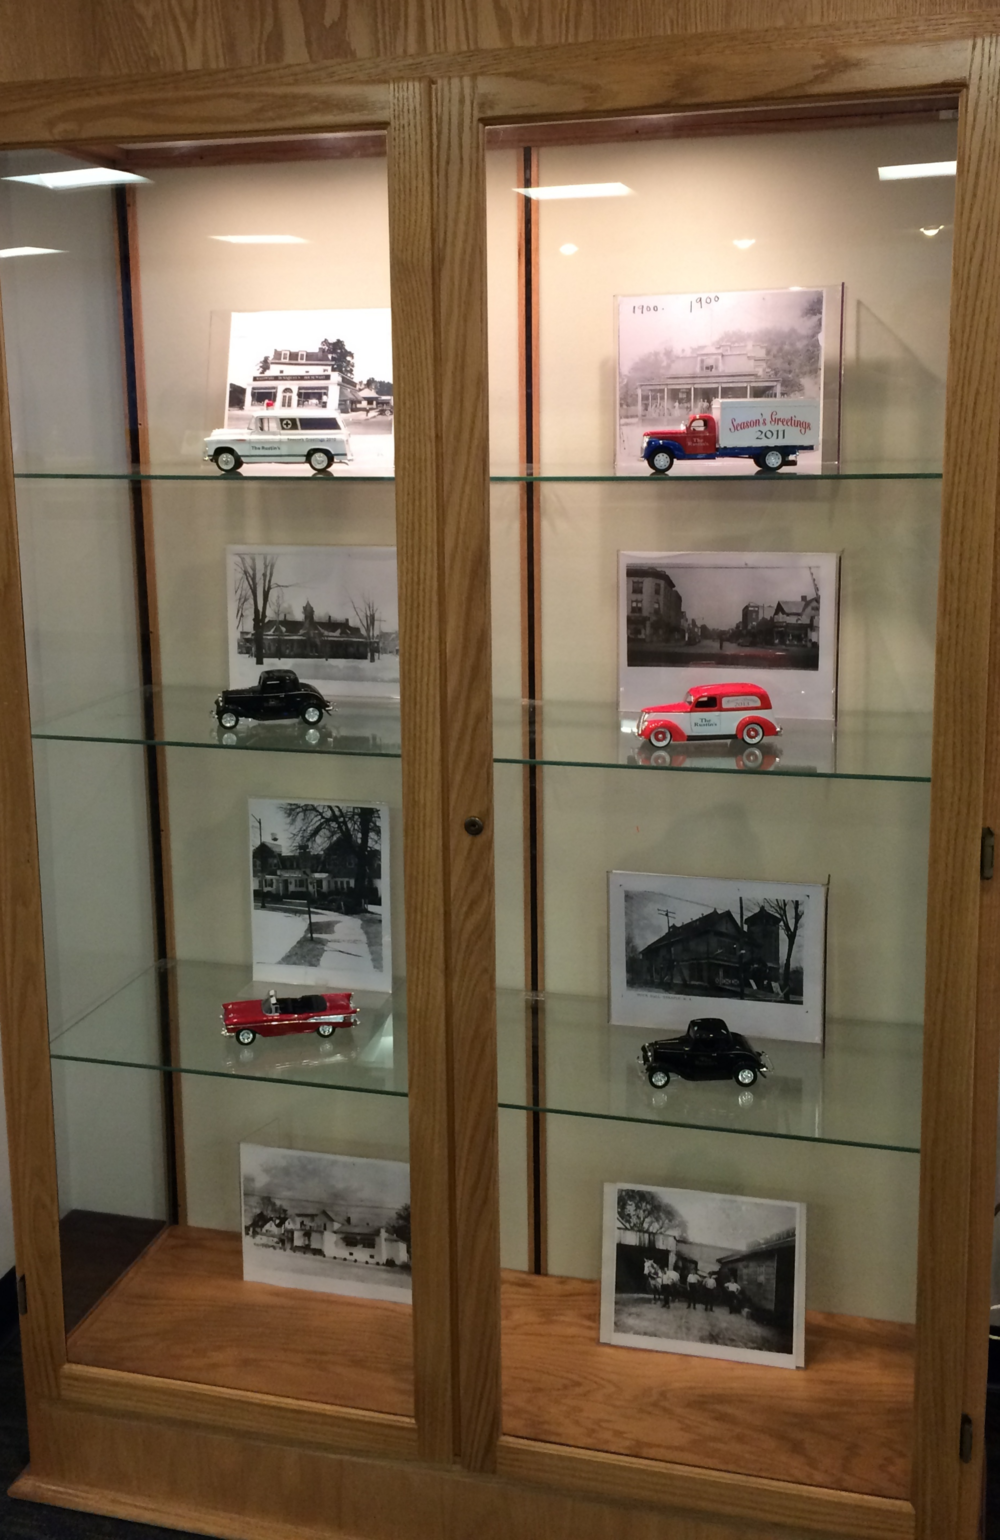 Come to the library and see our collection of holiday cars from Mayor Peter Rustin!